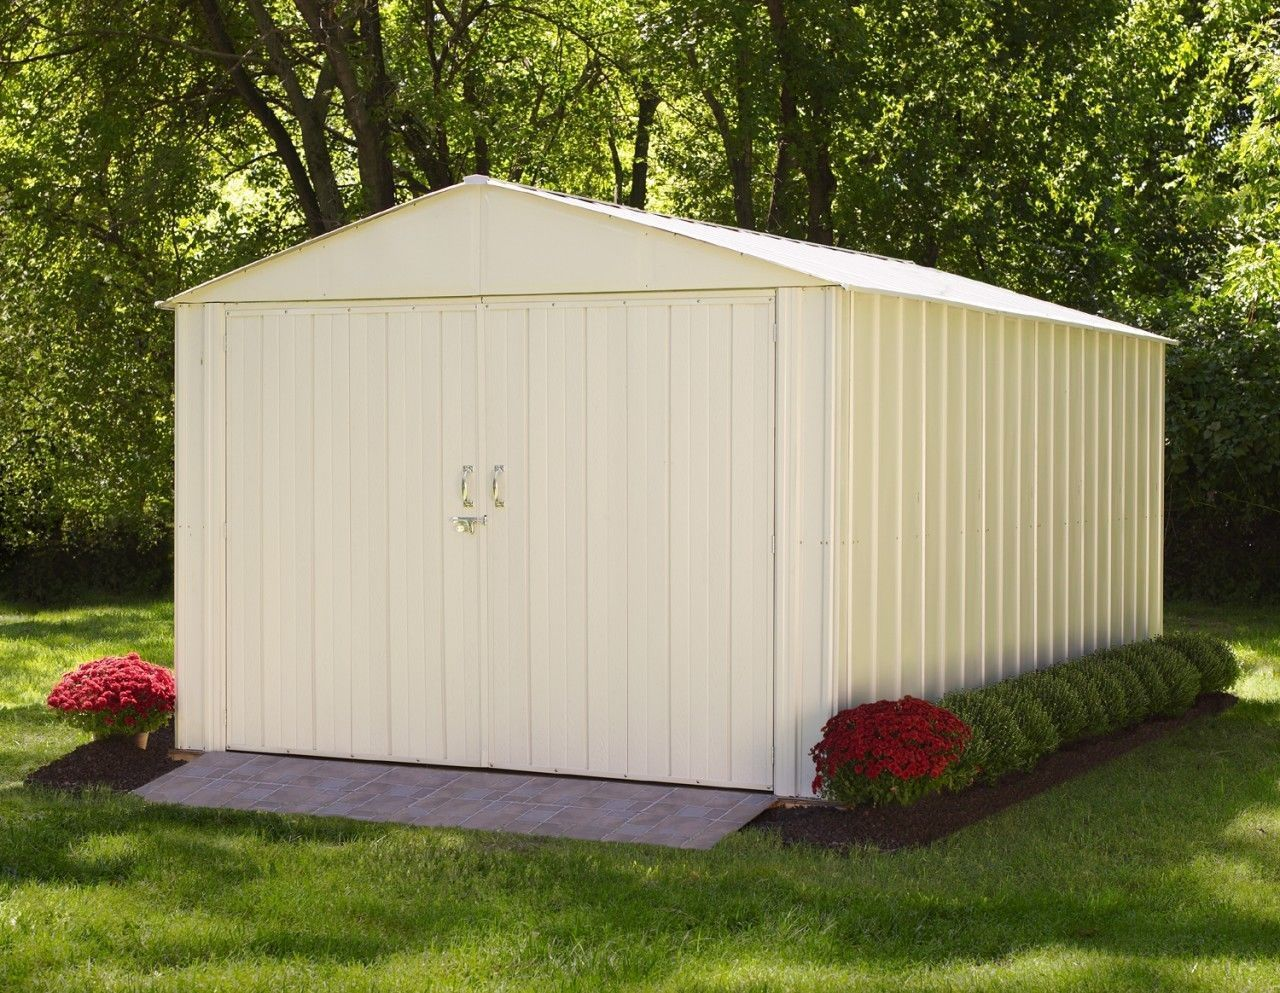 Rubbermaid Sheds | Rubbermaid Shed Anchors | Rubbermaid Storage Shed Lowes